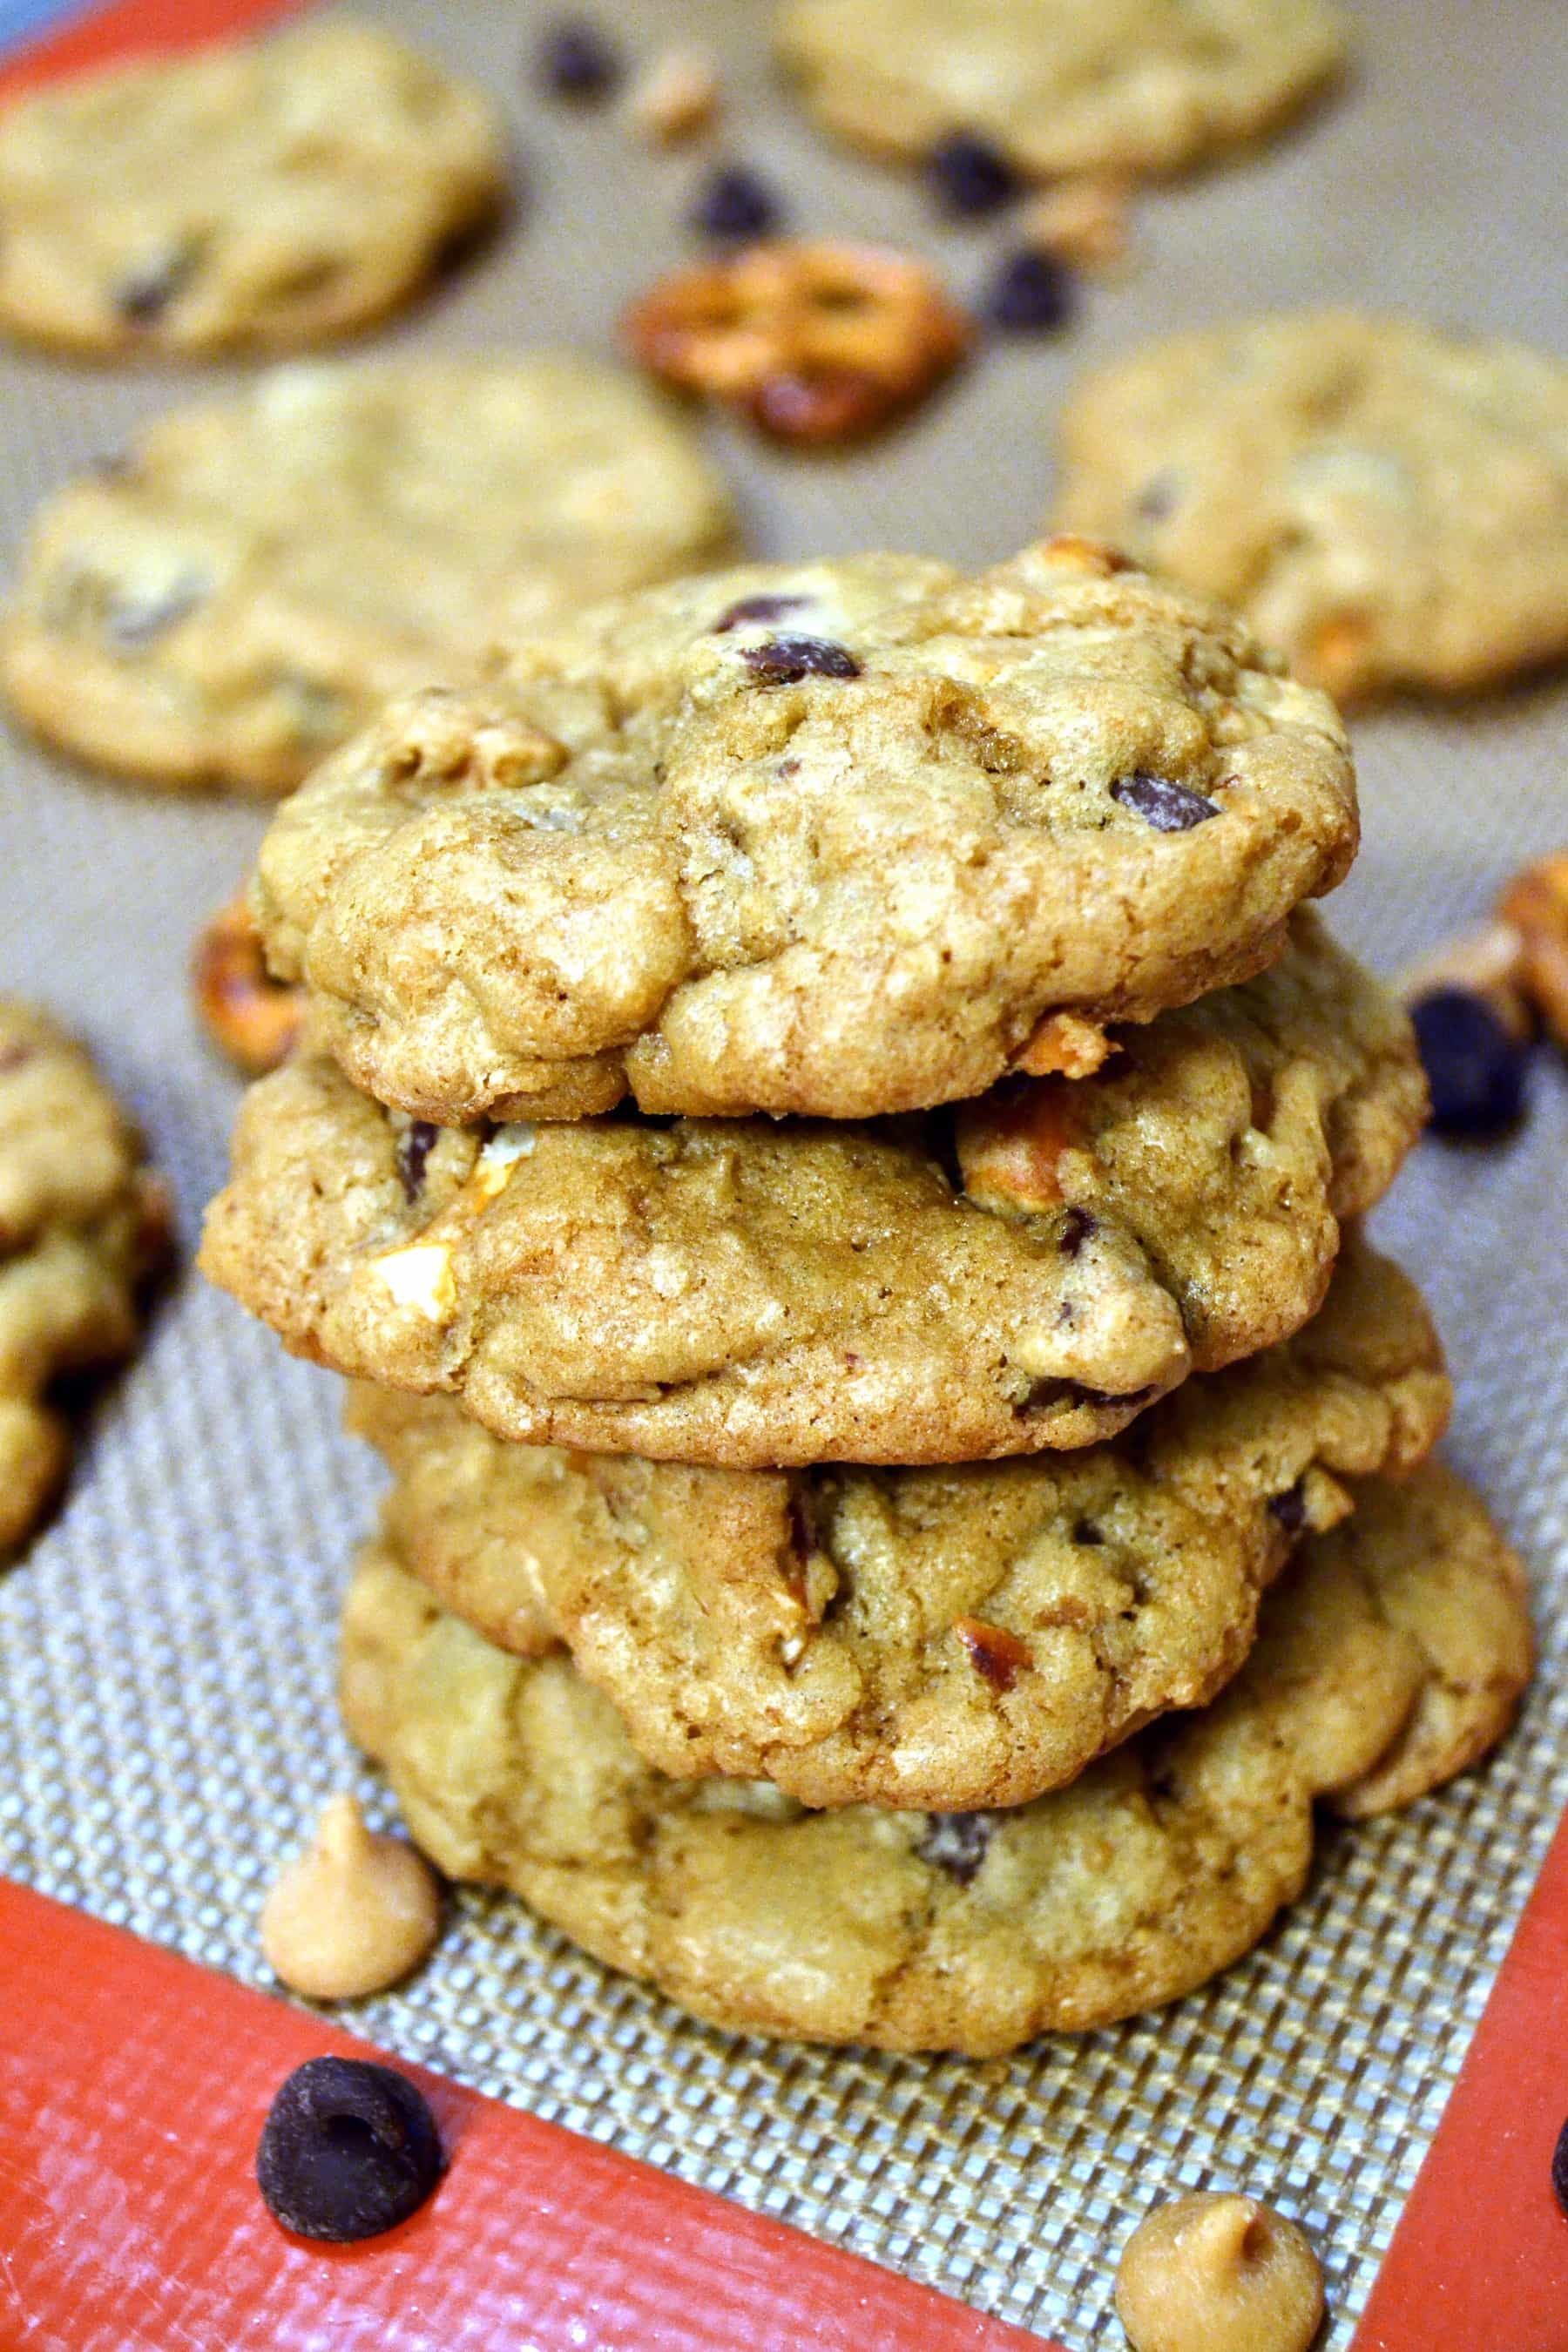 Crispy Chewy Pretzel, Peanut Butter, and Chocolate Chip Cookies